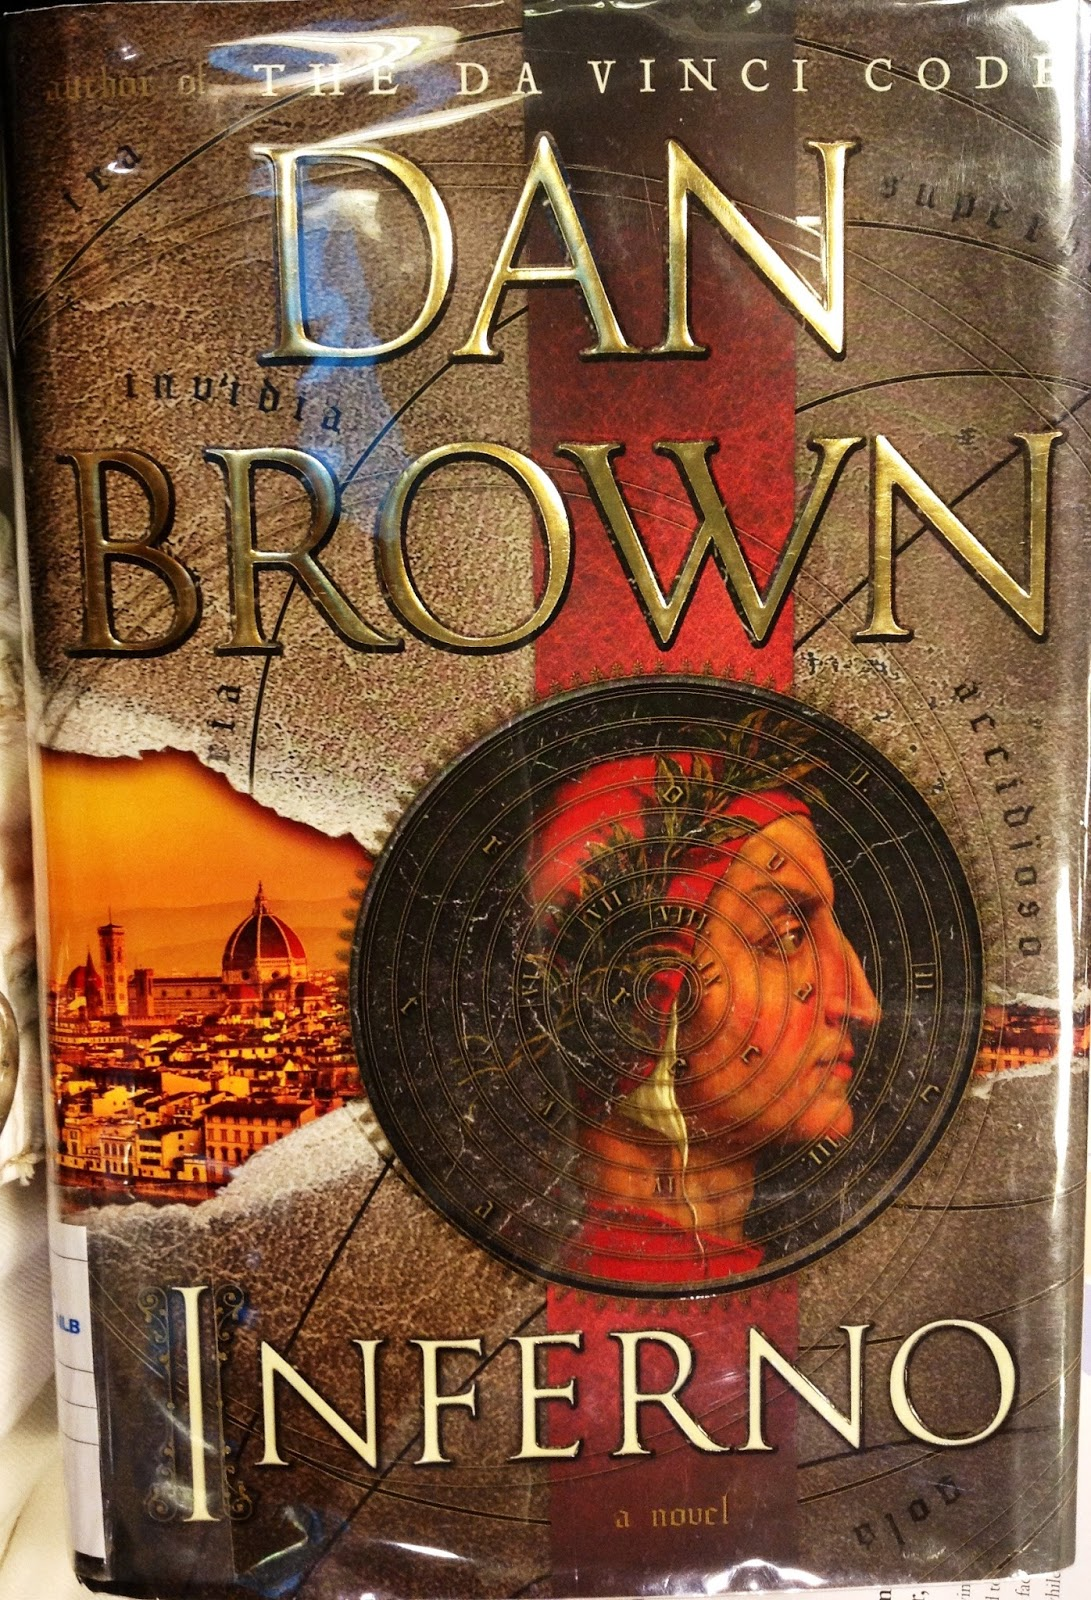 From dantes inferno purgatory to paradiso to dan browns inferno other than that inferno is not a bad read filled with adventures mystery and the usual twists in the plots and it is better than the lost symbol biocorpaavc